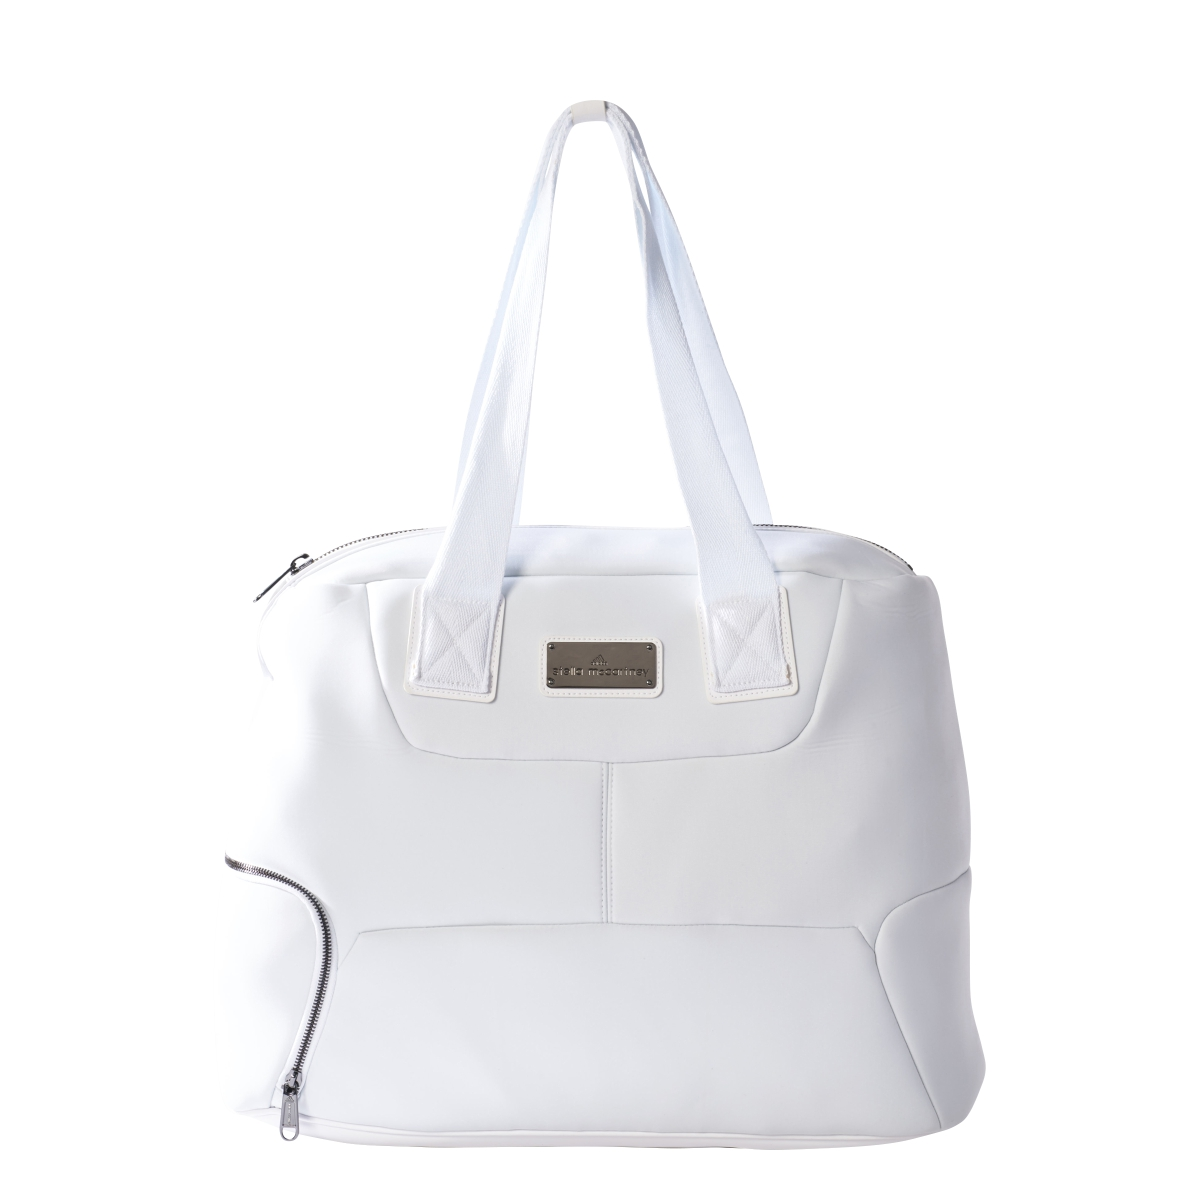 303a5147ba Adidas Women s Stella McCartney Tennis Bag (White) - Do It Tennis